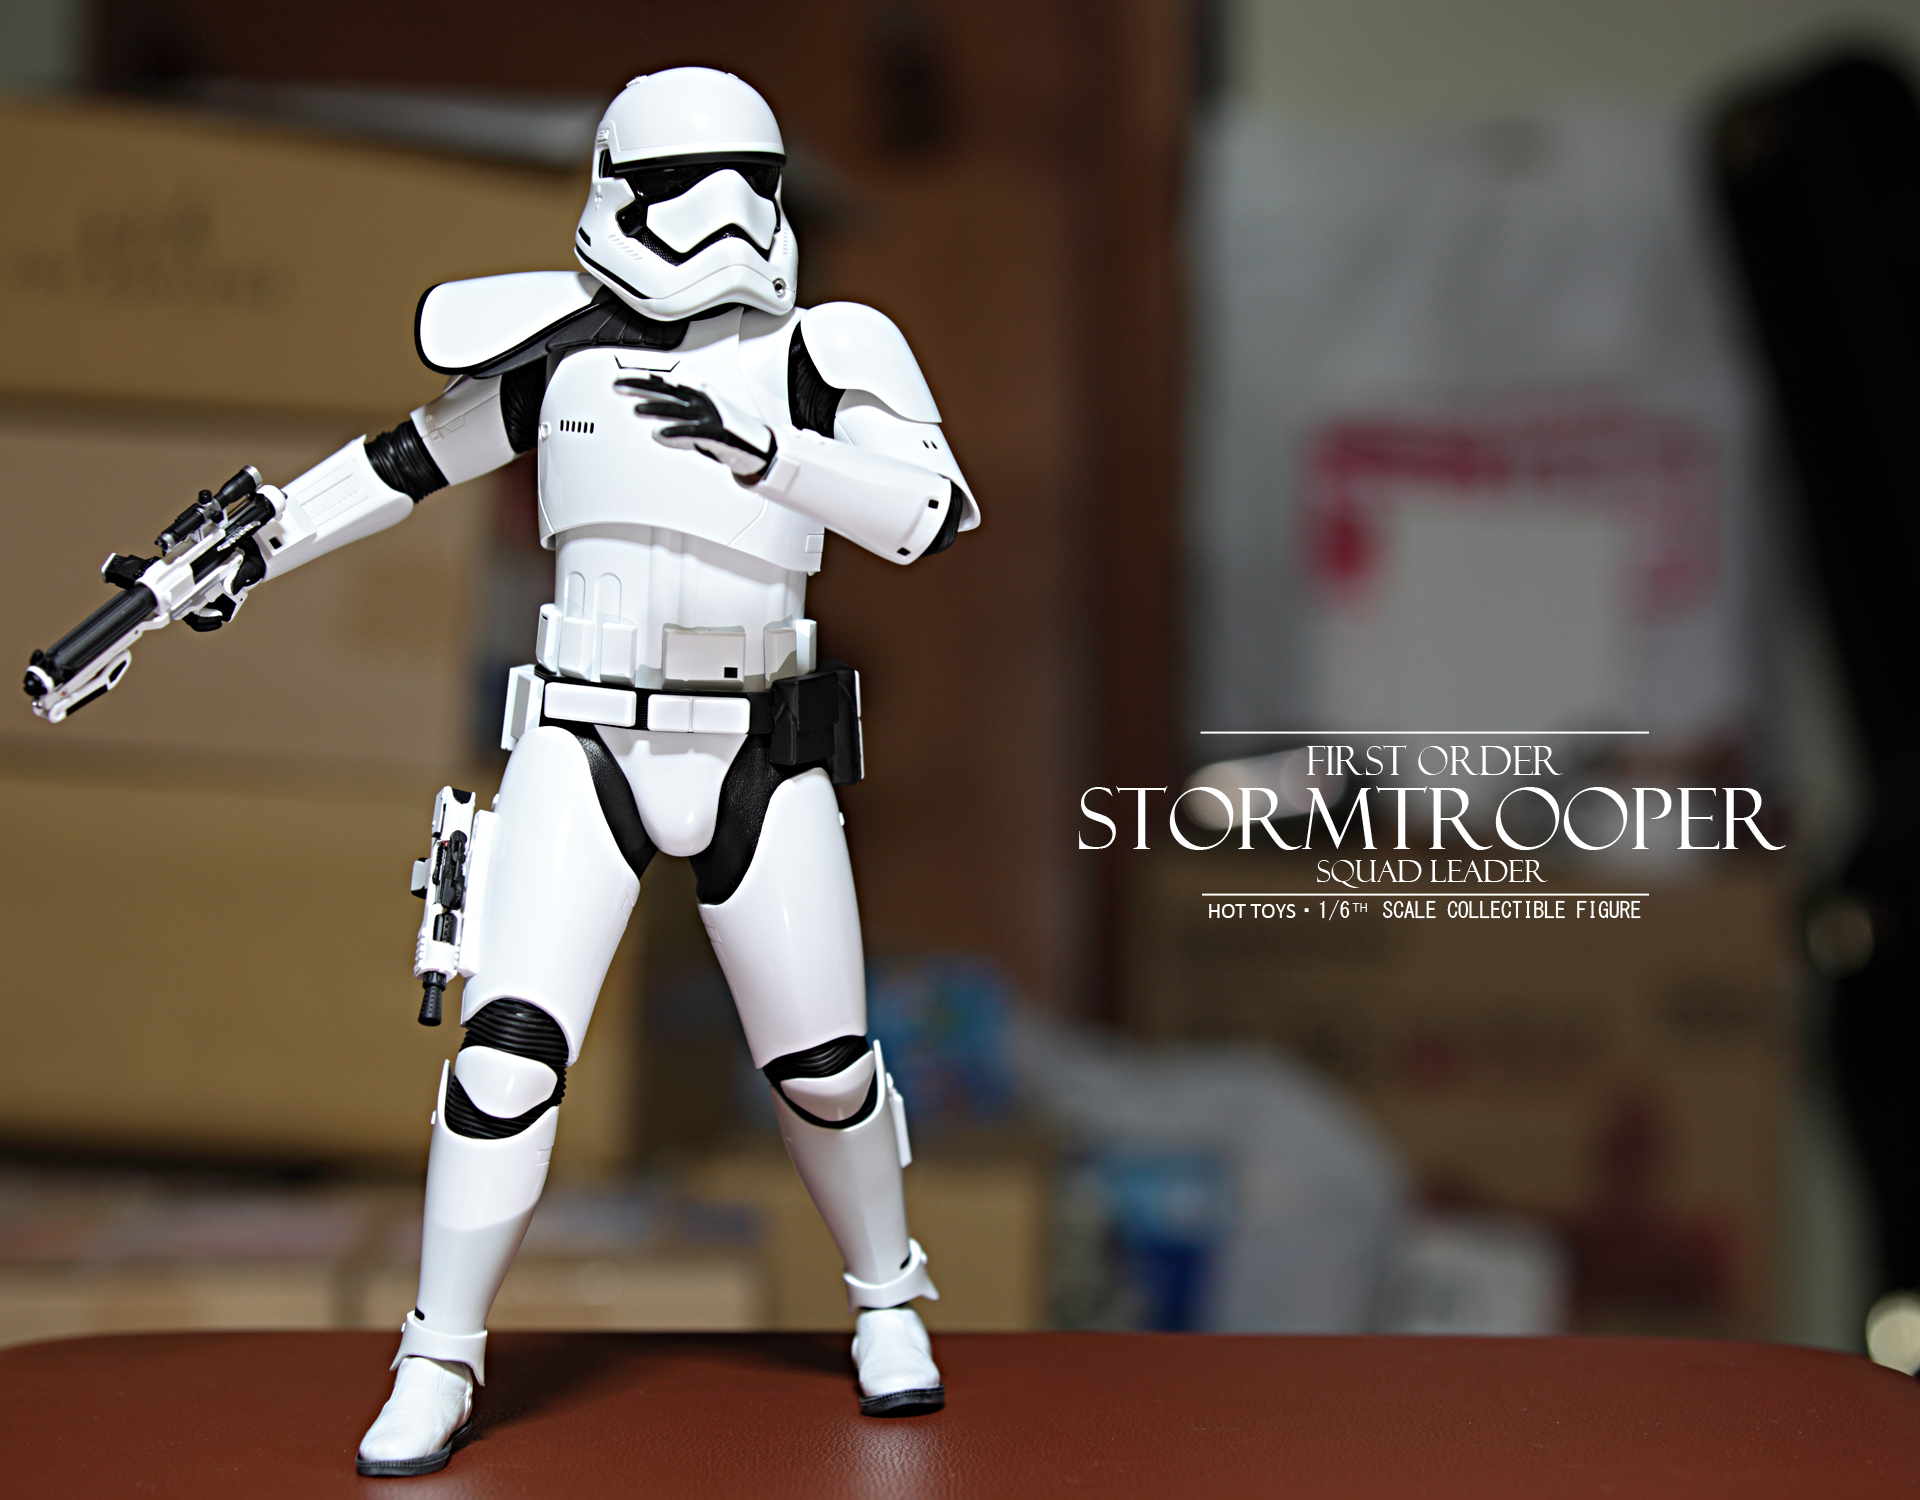 hottoys-star-wars-the-force-awakens-first-order-stormtrooper-Squad-Leader-picture01hottoys-star-wars-the-force-awakens-first-order-stormtrooper-Squad-Leader-picture07